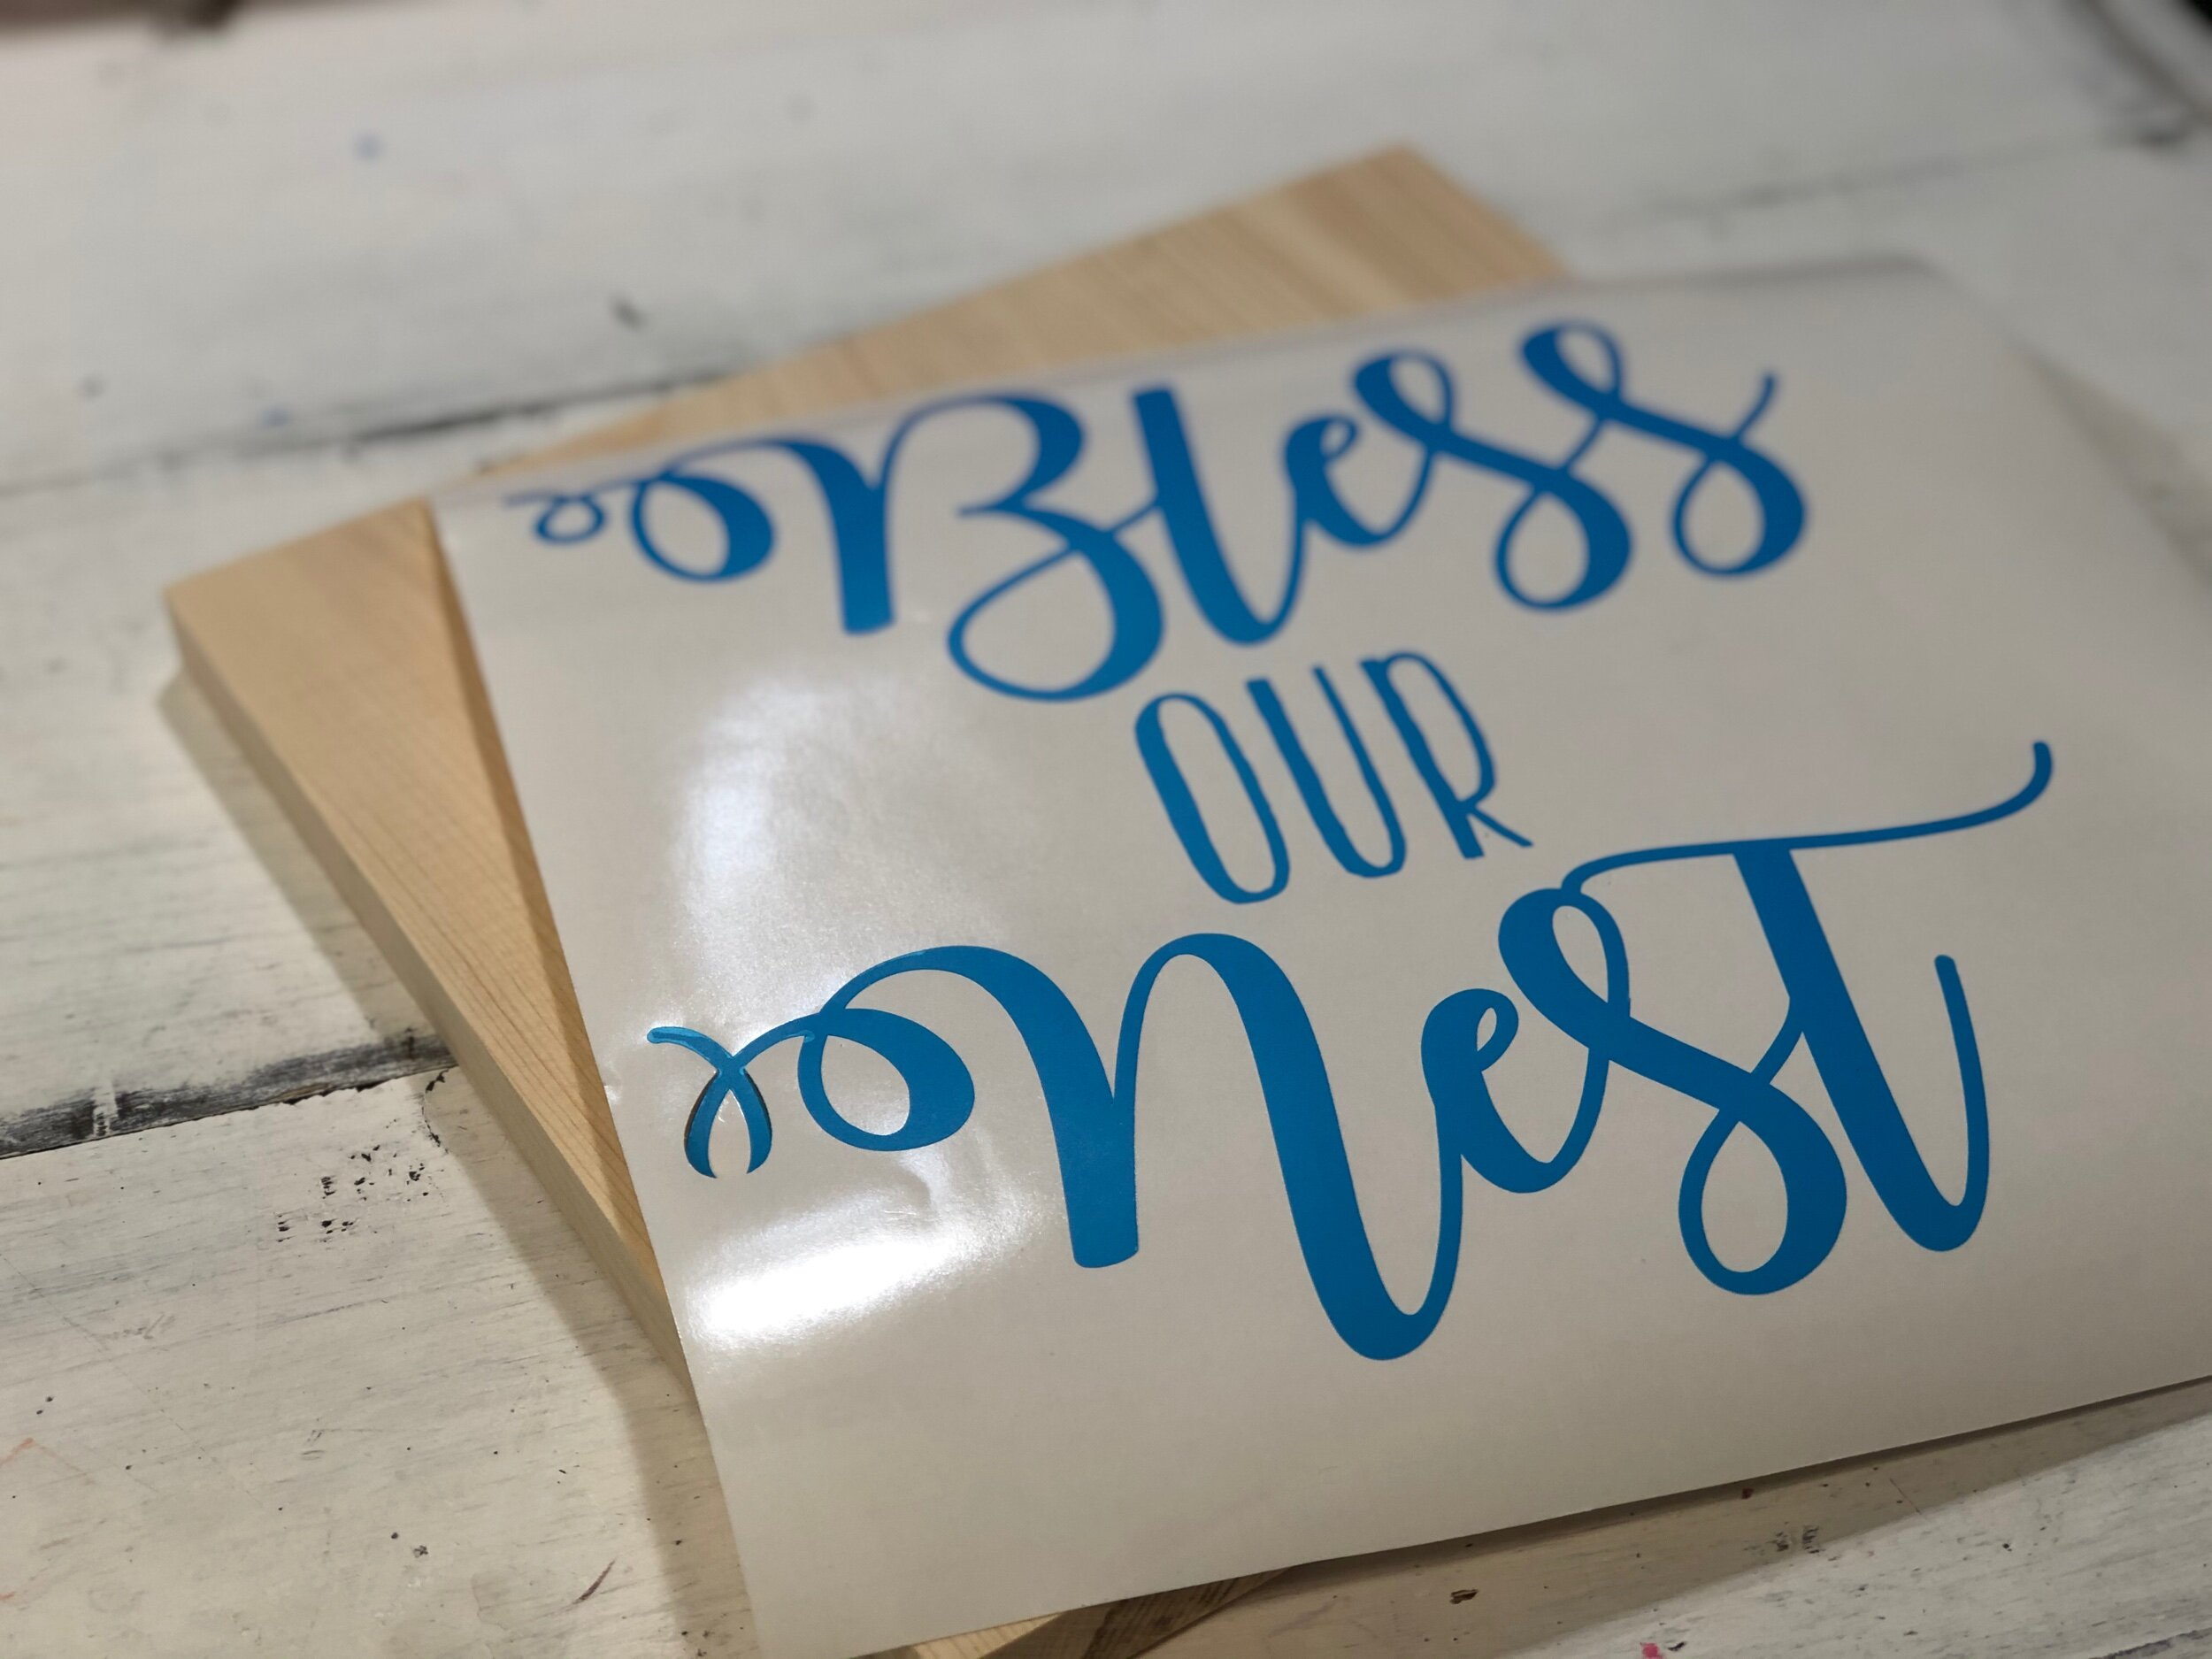 Bless our nest wood sign, how to paint a sign with no paint bleed. Reverse stencil method is perfect for new sign painters to get their feet wet in the sign painting world. Grab your FREE wooden sign svg for stenciling. Make your own rustic bless our nest wooden sign